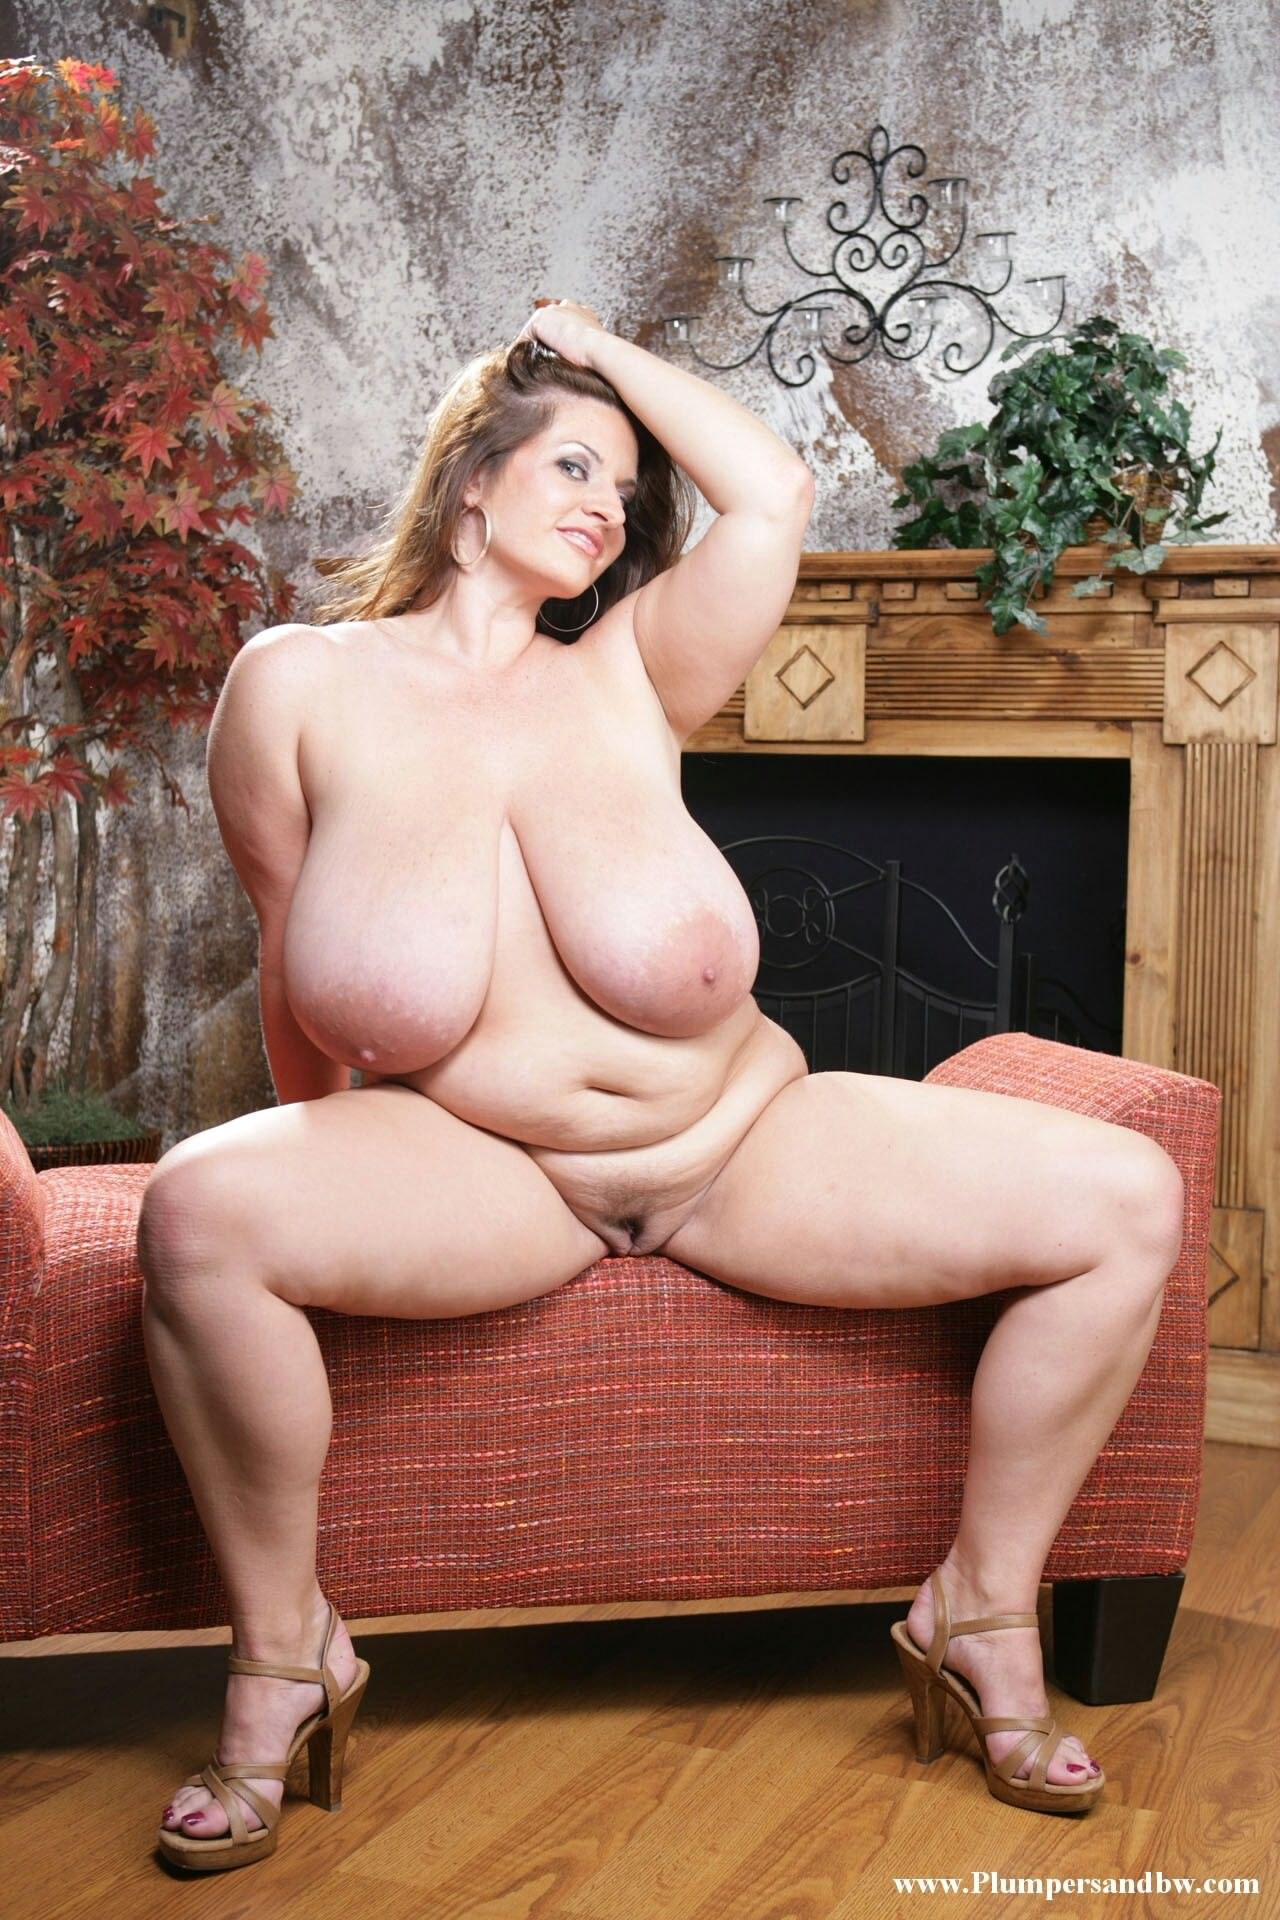 maria moore galleries